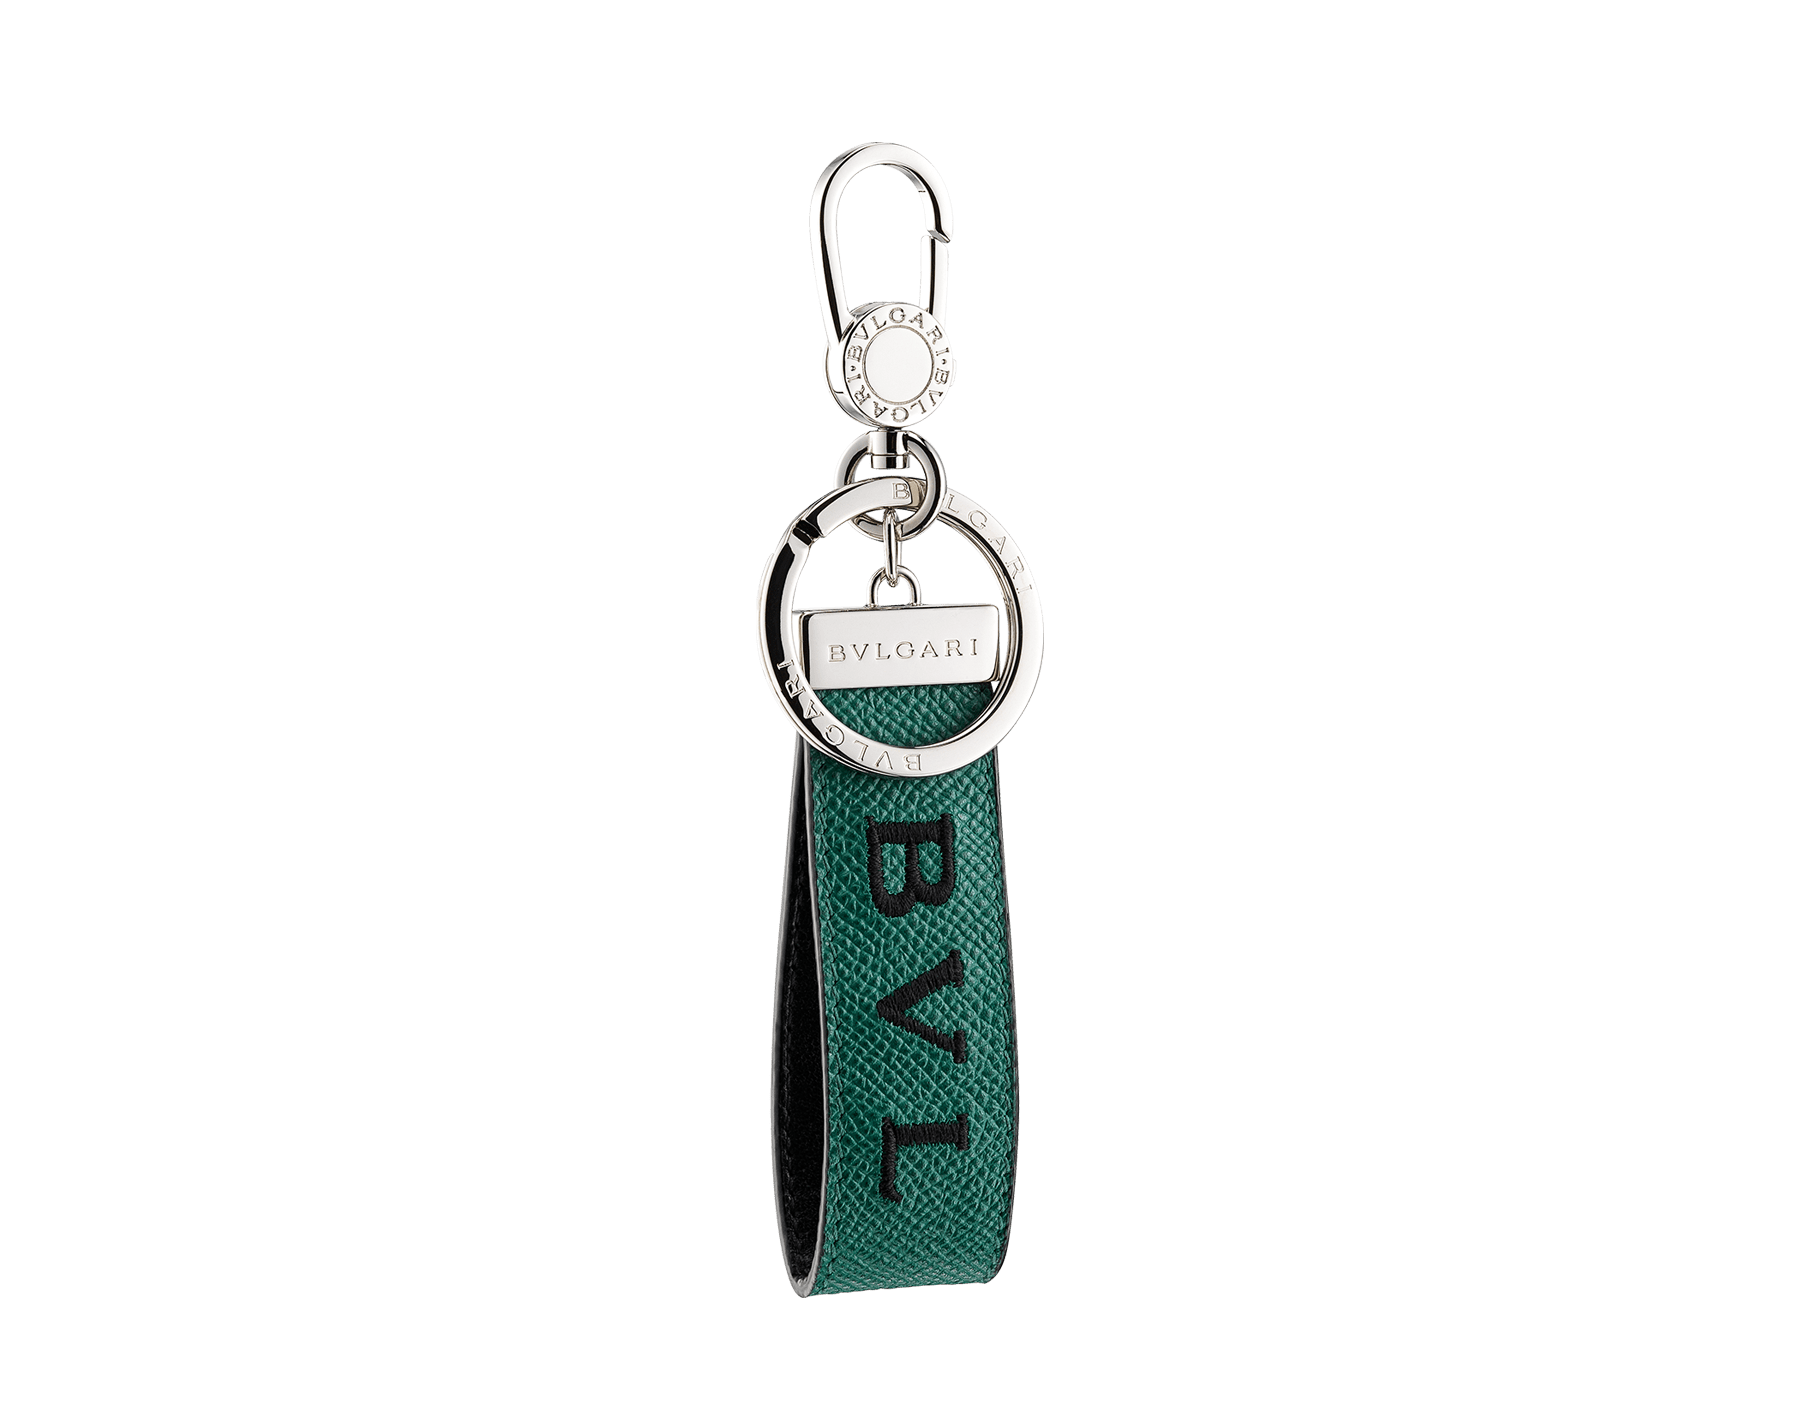 "New ""BVLGARI BVLGARI"" keyring in emerald-green grained calfskin with embroidered black Bvlgari logo. Snap hook and ring in palladium-plated brass, and embellished with iconic logo. BBM-KEYRINGLOGO image 1"